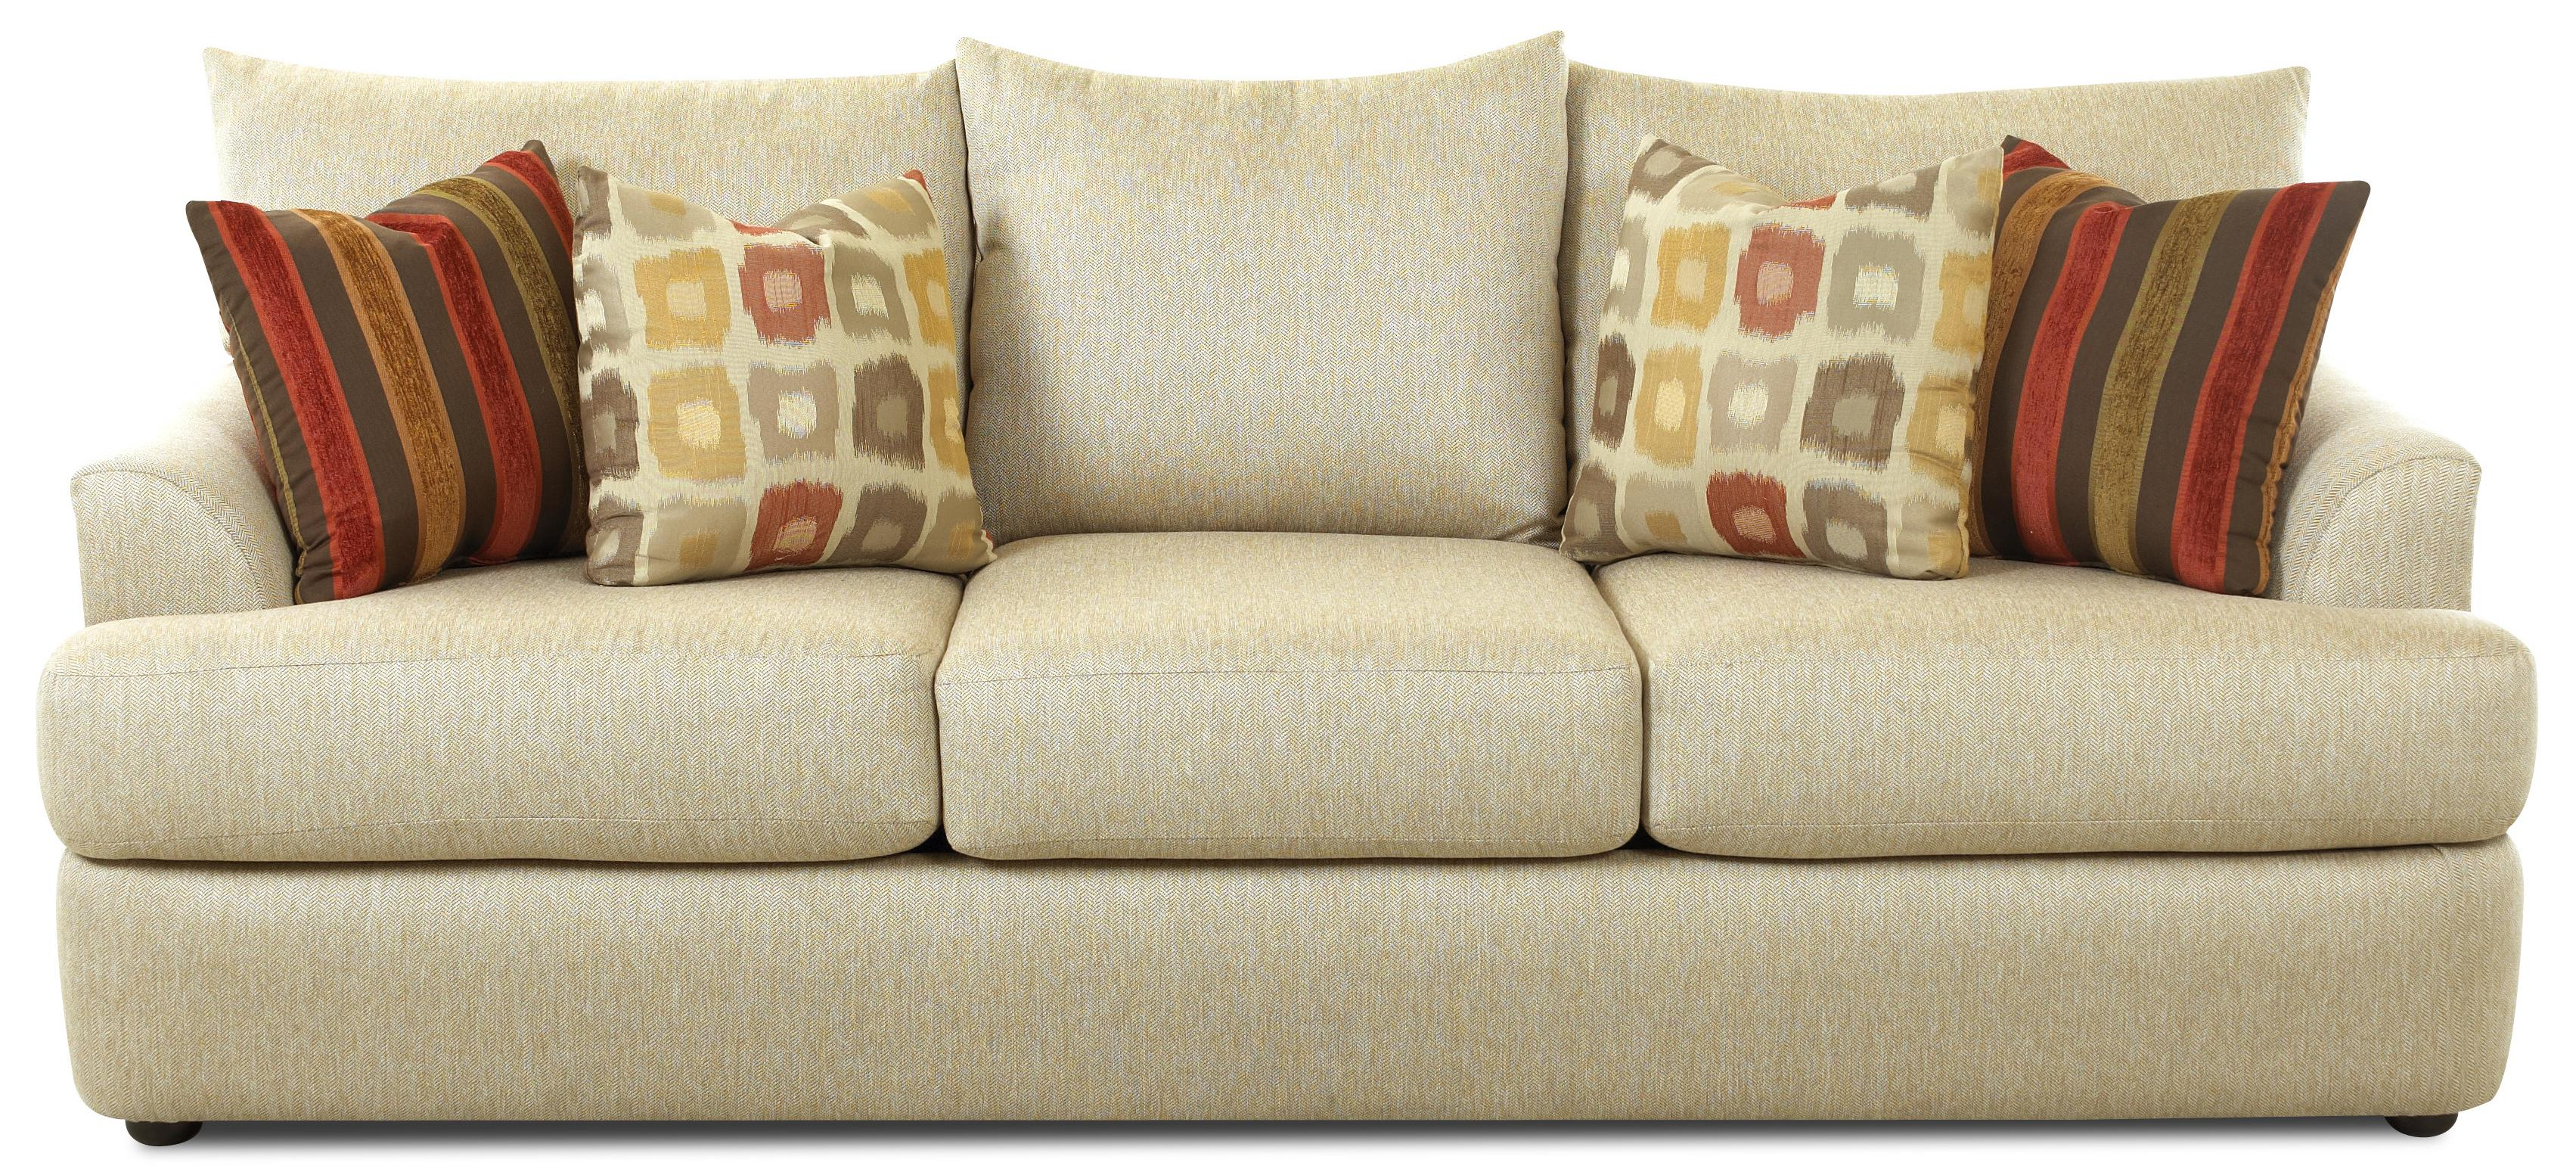 Three over three sofa with accent pillows by klaussner for Throw pillows for sectional sofa